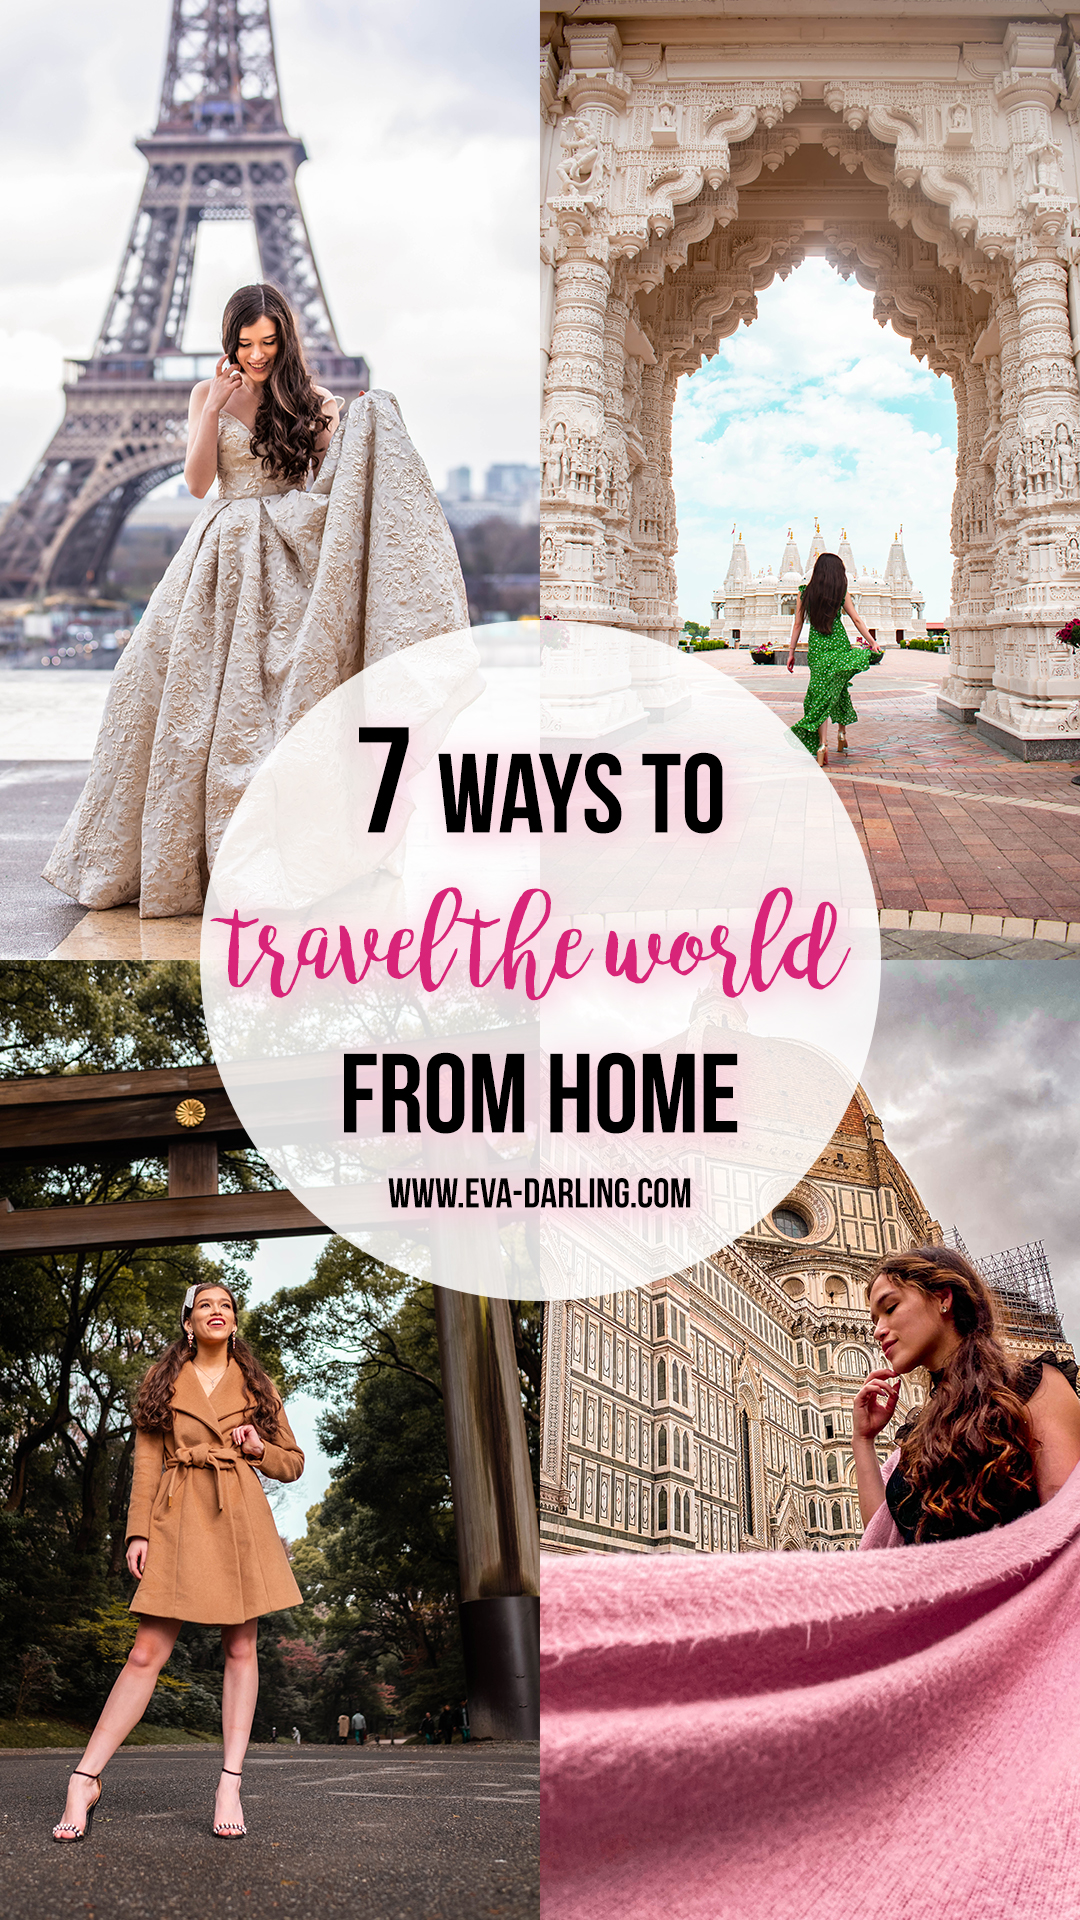 seven ways to travel from home paris france trocaderoeiffel tower baps shri swaminarayan mandi chicago illinois meiji jingu shrine harajuku shibuya tokyo duomo di firenze florence tuscany italy solo female travel tips virtual tour travel guide